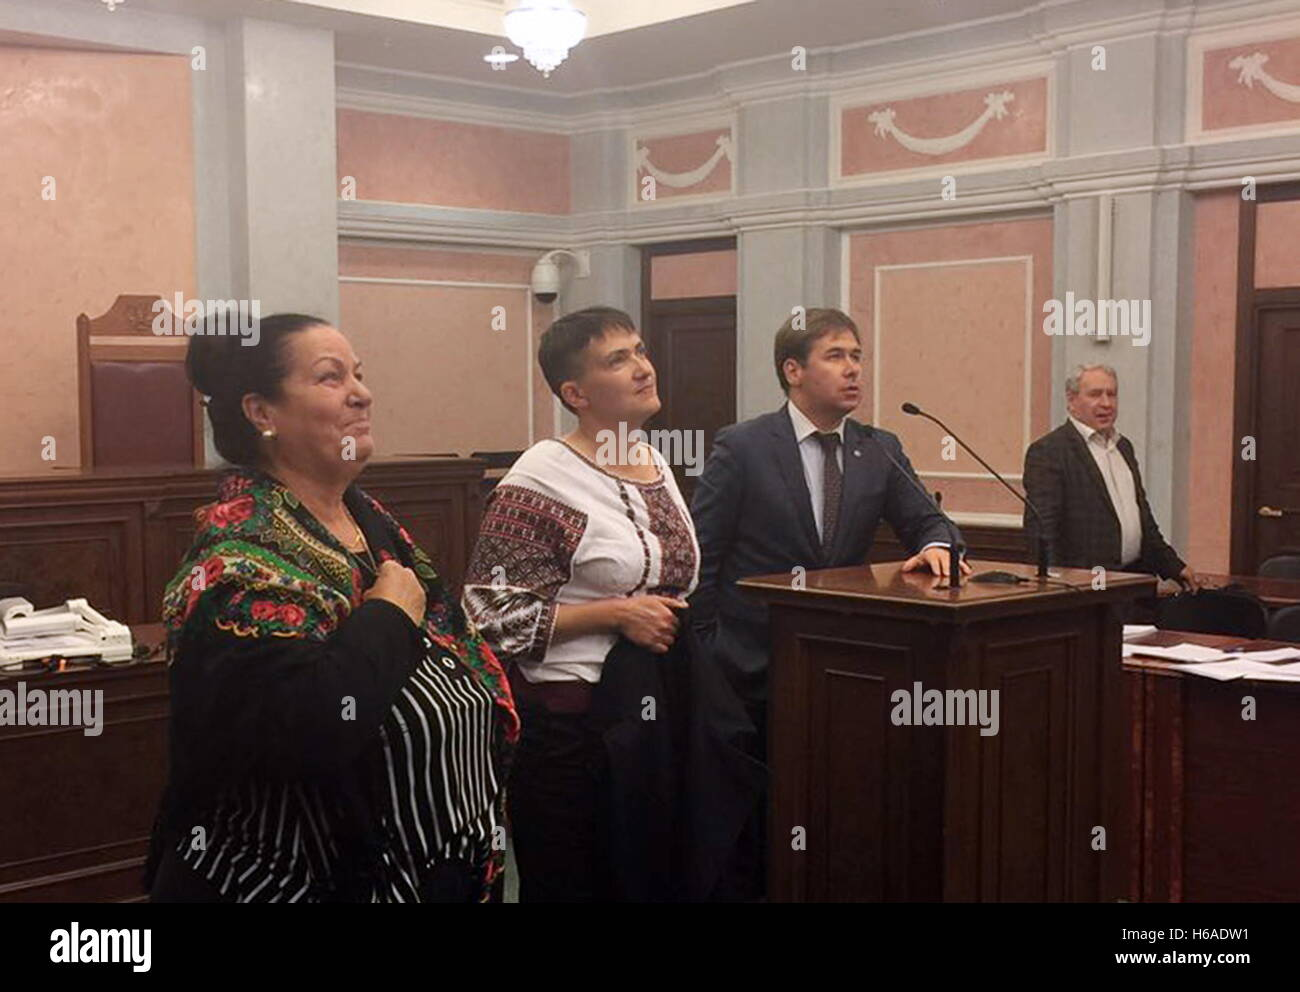 Moscow, Russia. 26th Oct, 2016. Ukraine's Verkhovna Rada member Nadezhda Savchenko (2nd L) and her lawyer Ilya - Stock Image